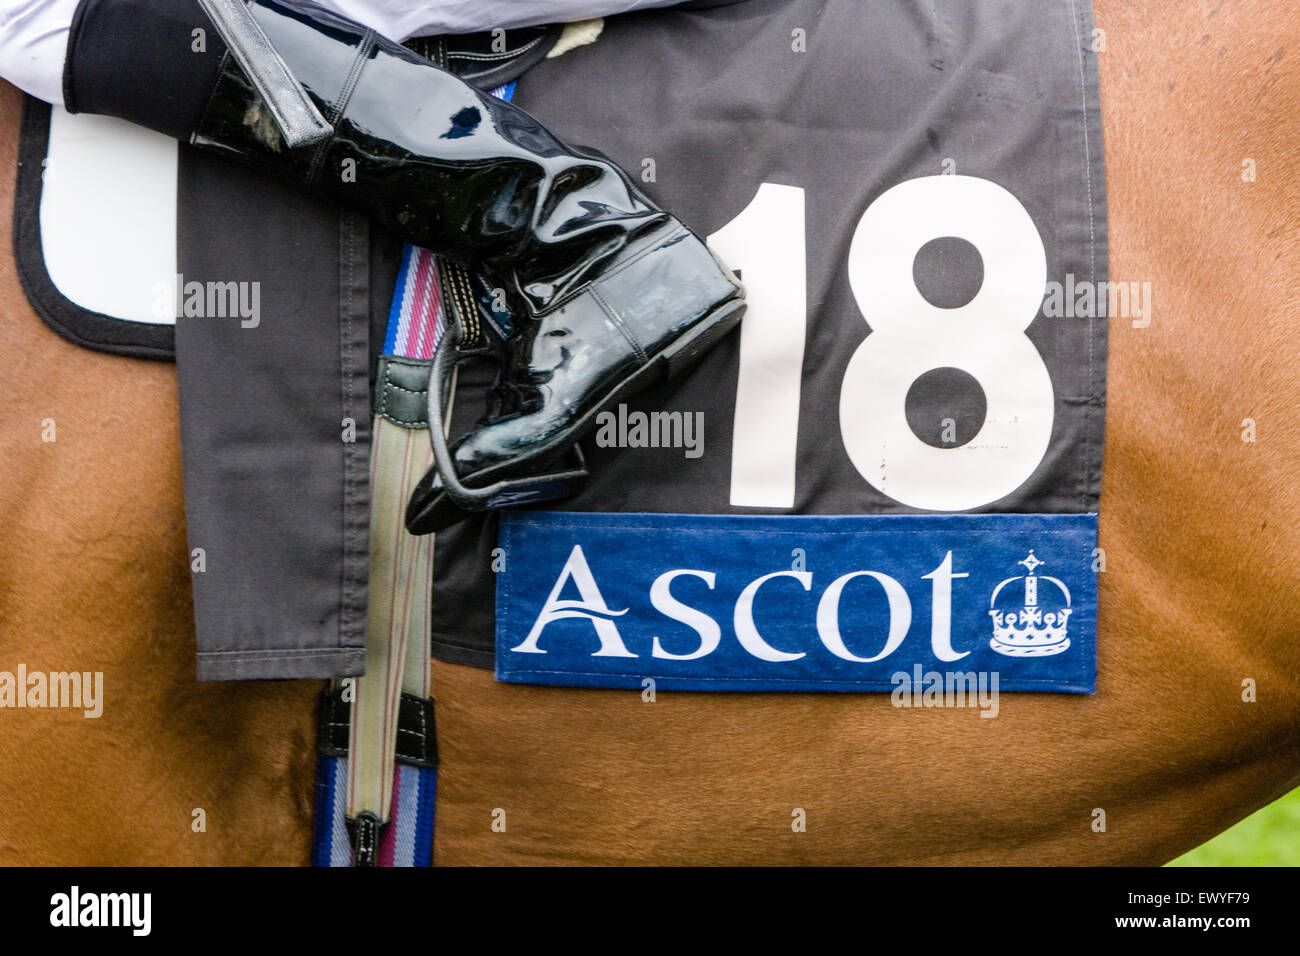 At the world's best flat horse racing meeting, Royal Ascot horse race meeting attended by the Queen and royal - Stock Image